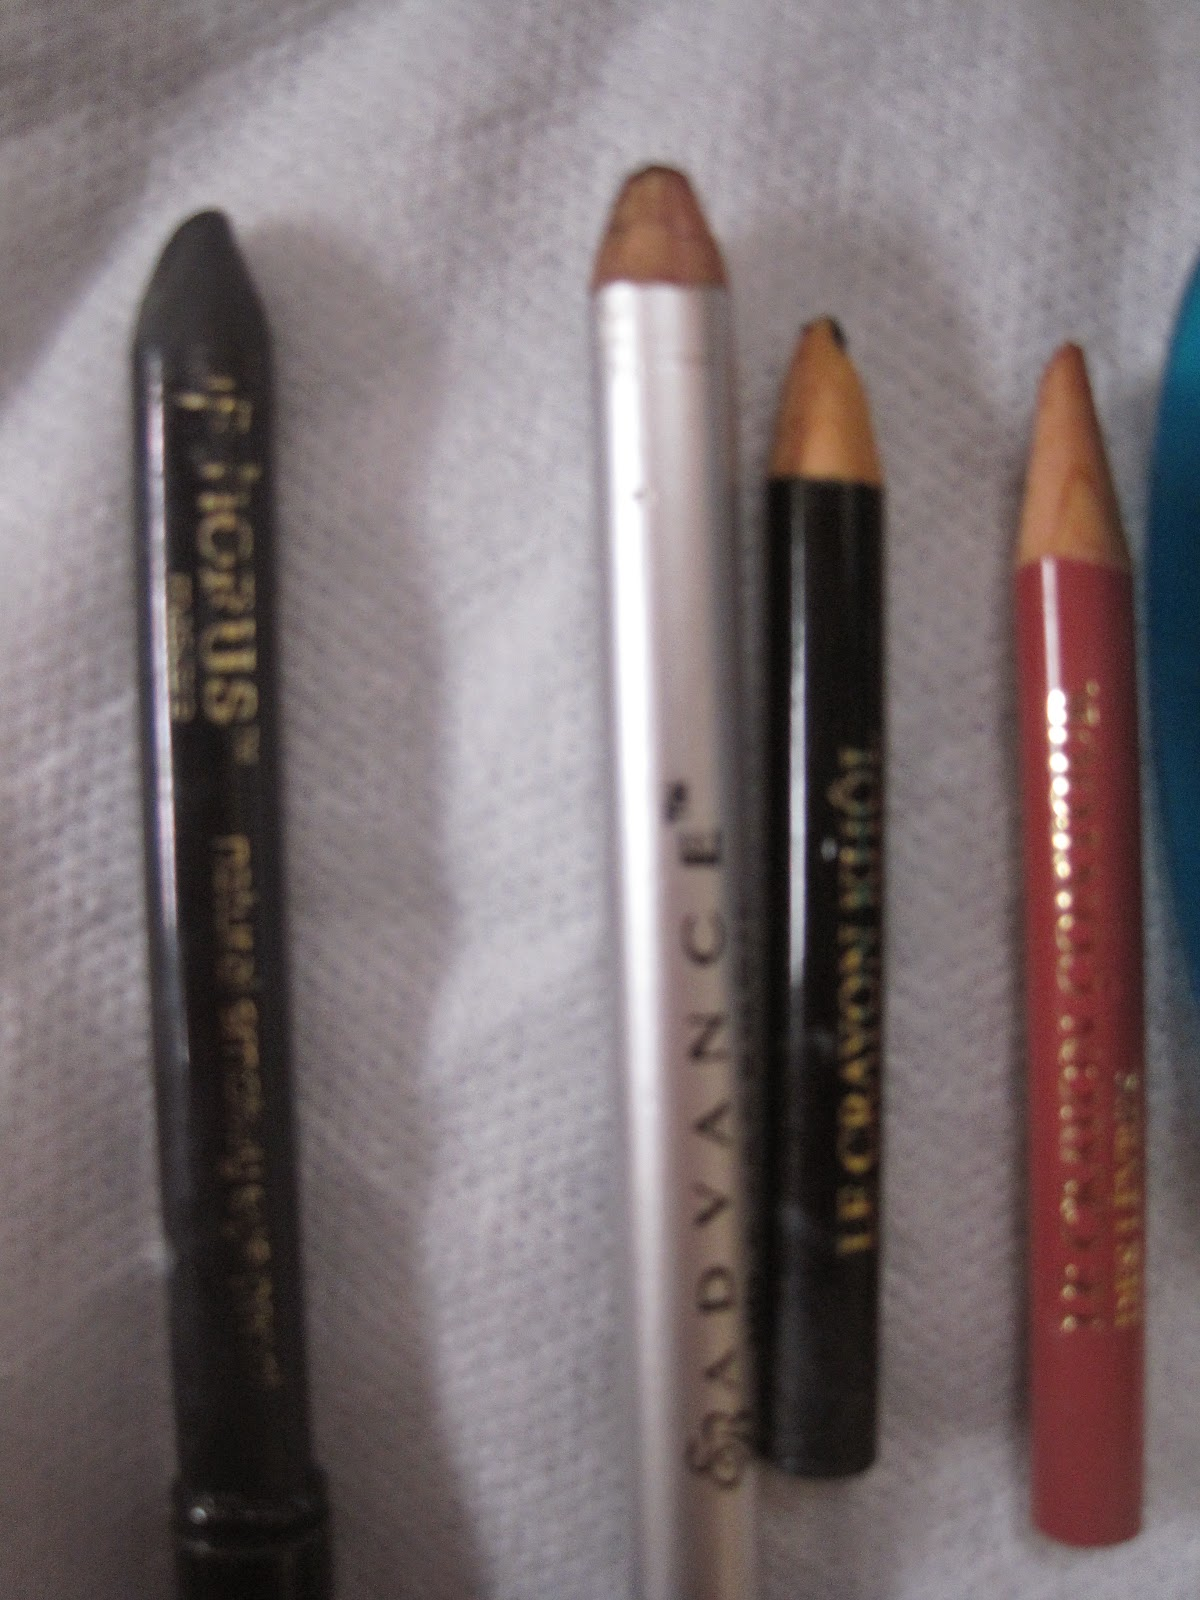 pencils- eye of horus, ever bilena, lancome